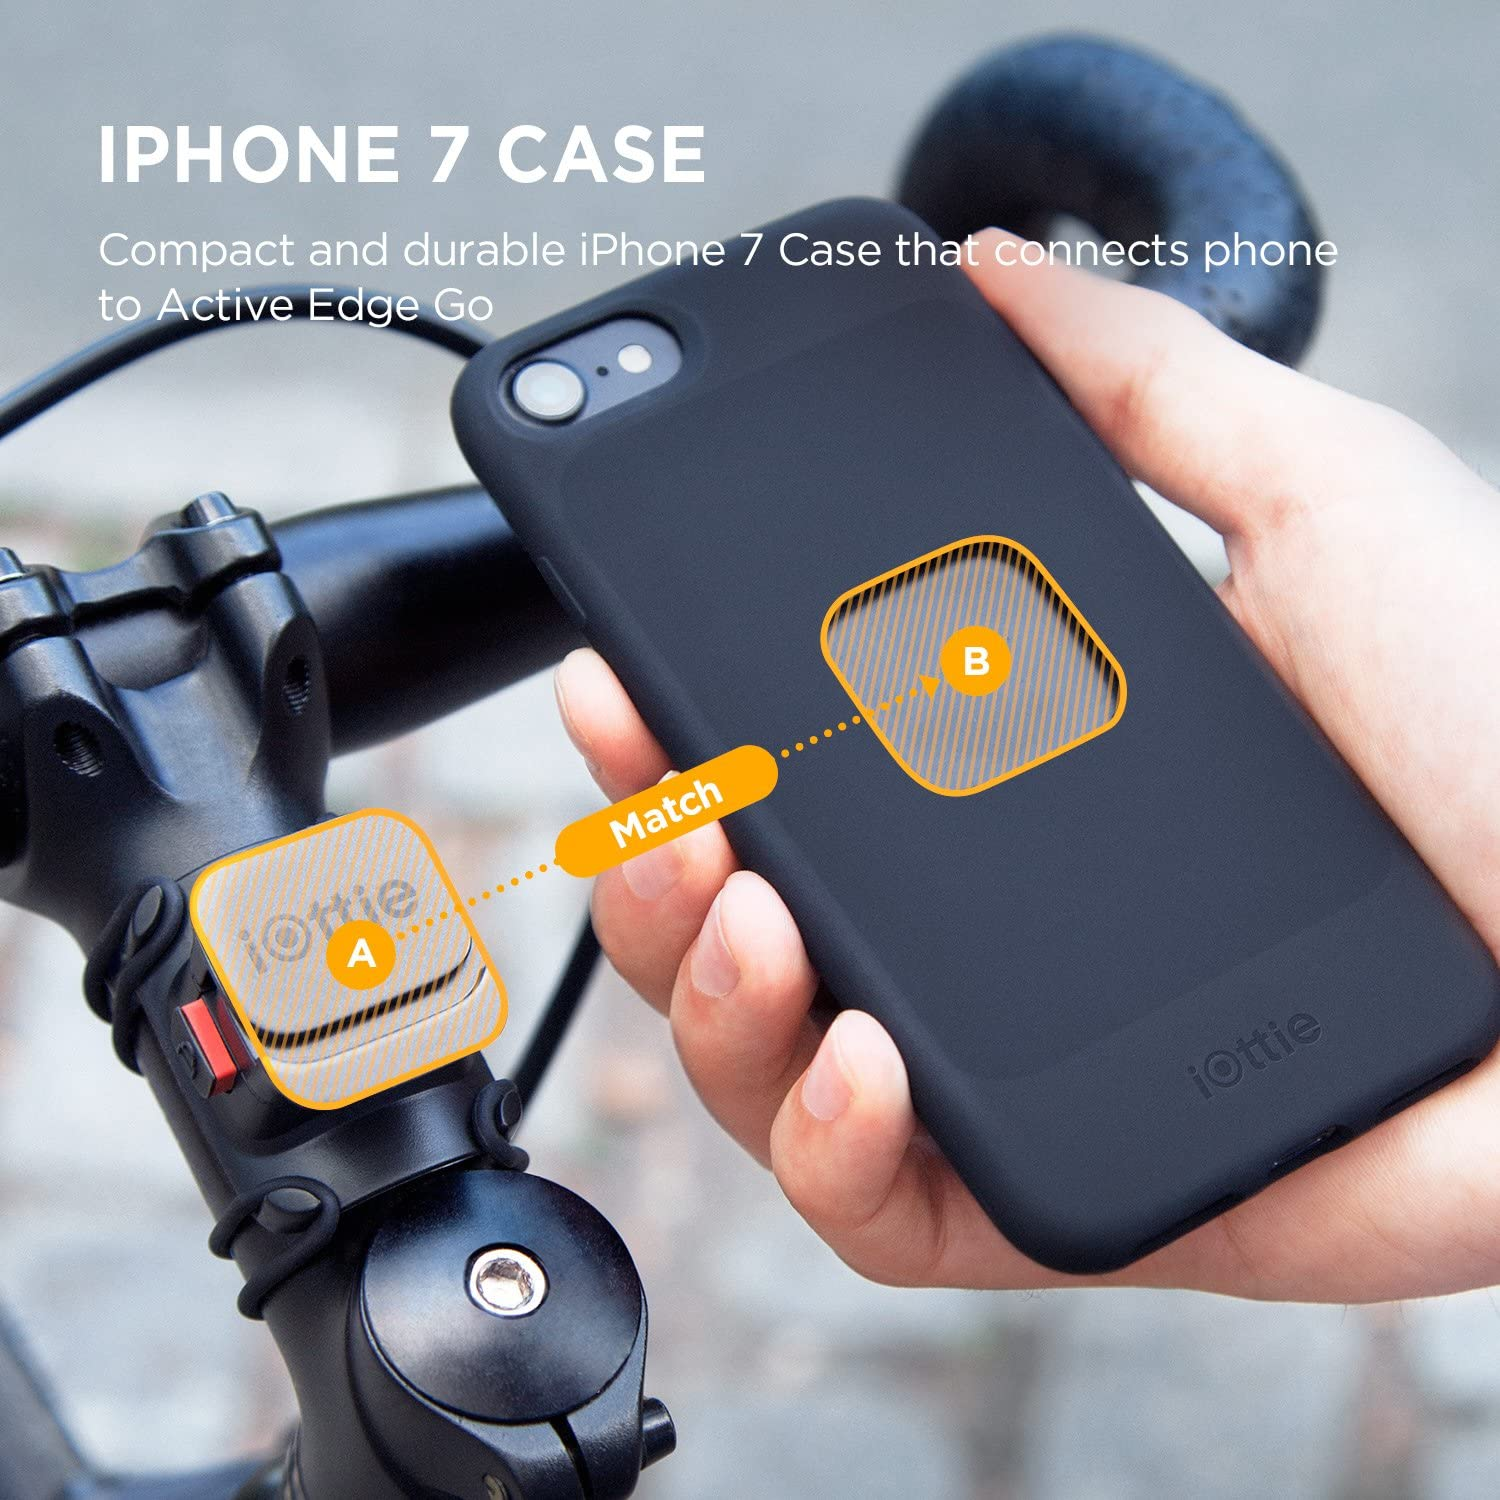 Universal Smartphone iPhone Xs Max R 8//8S 7 Plus 6S 6 SE Samsung Galaxy S8 Plus S8 Edge S7 S6 Note 8 5 iOttie Activeedge Go Bike Phone Holder Bar Mount